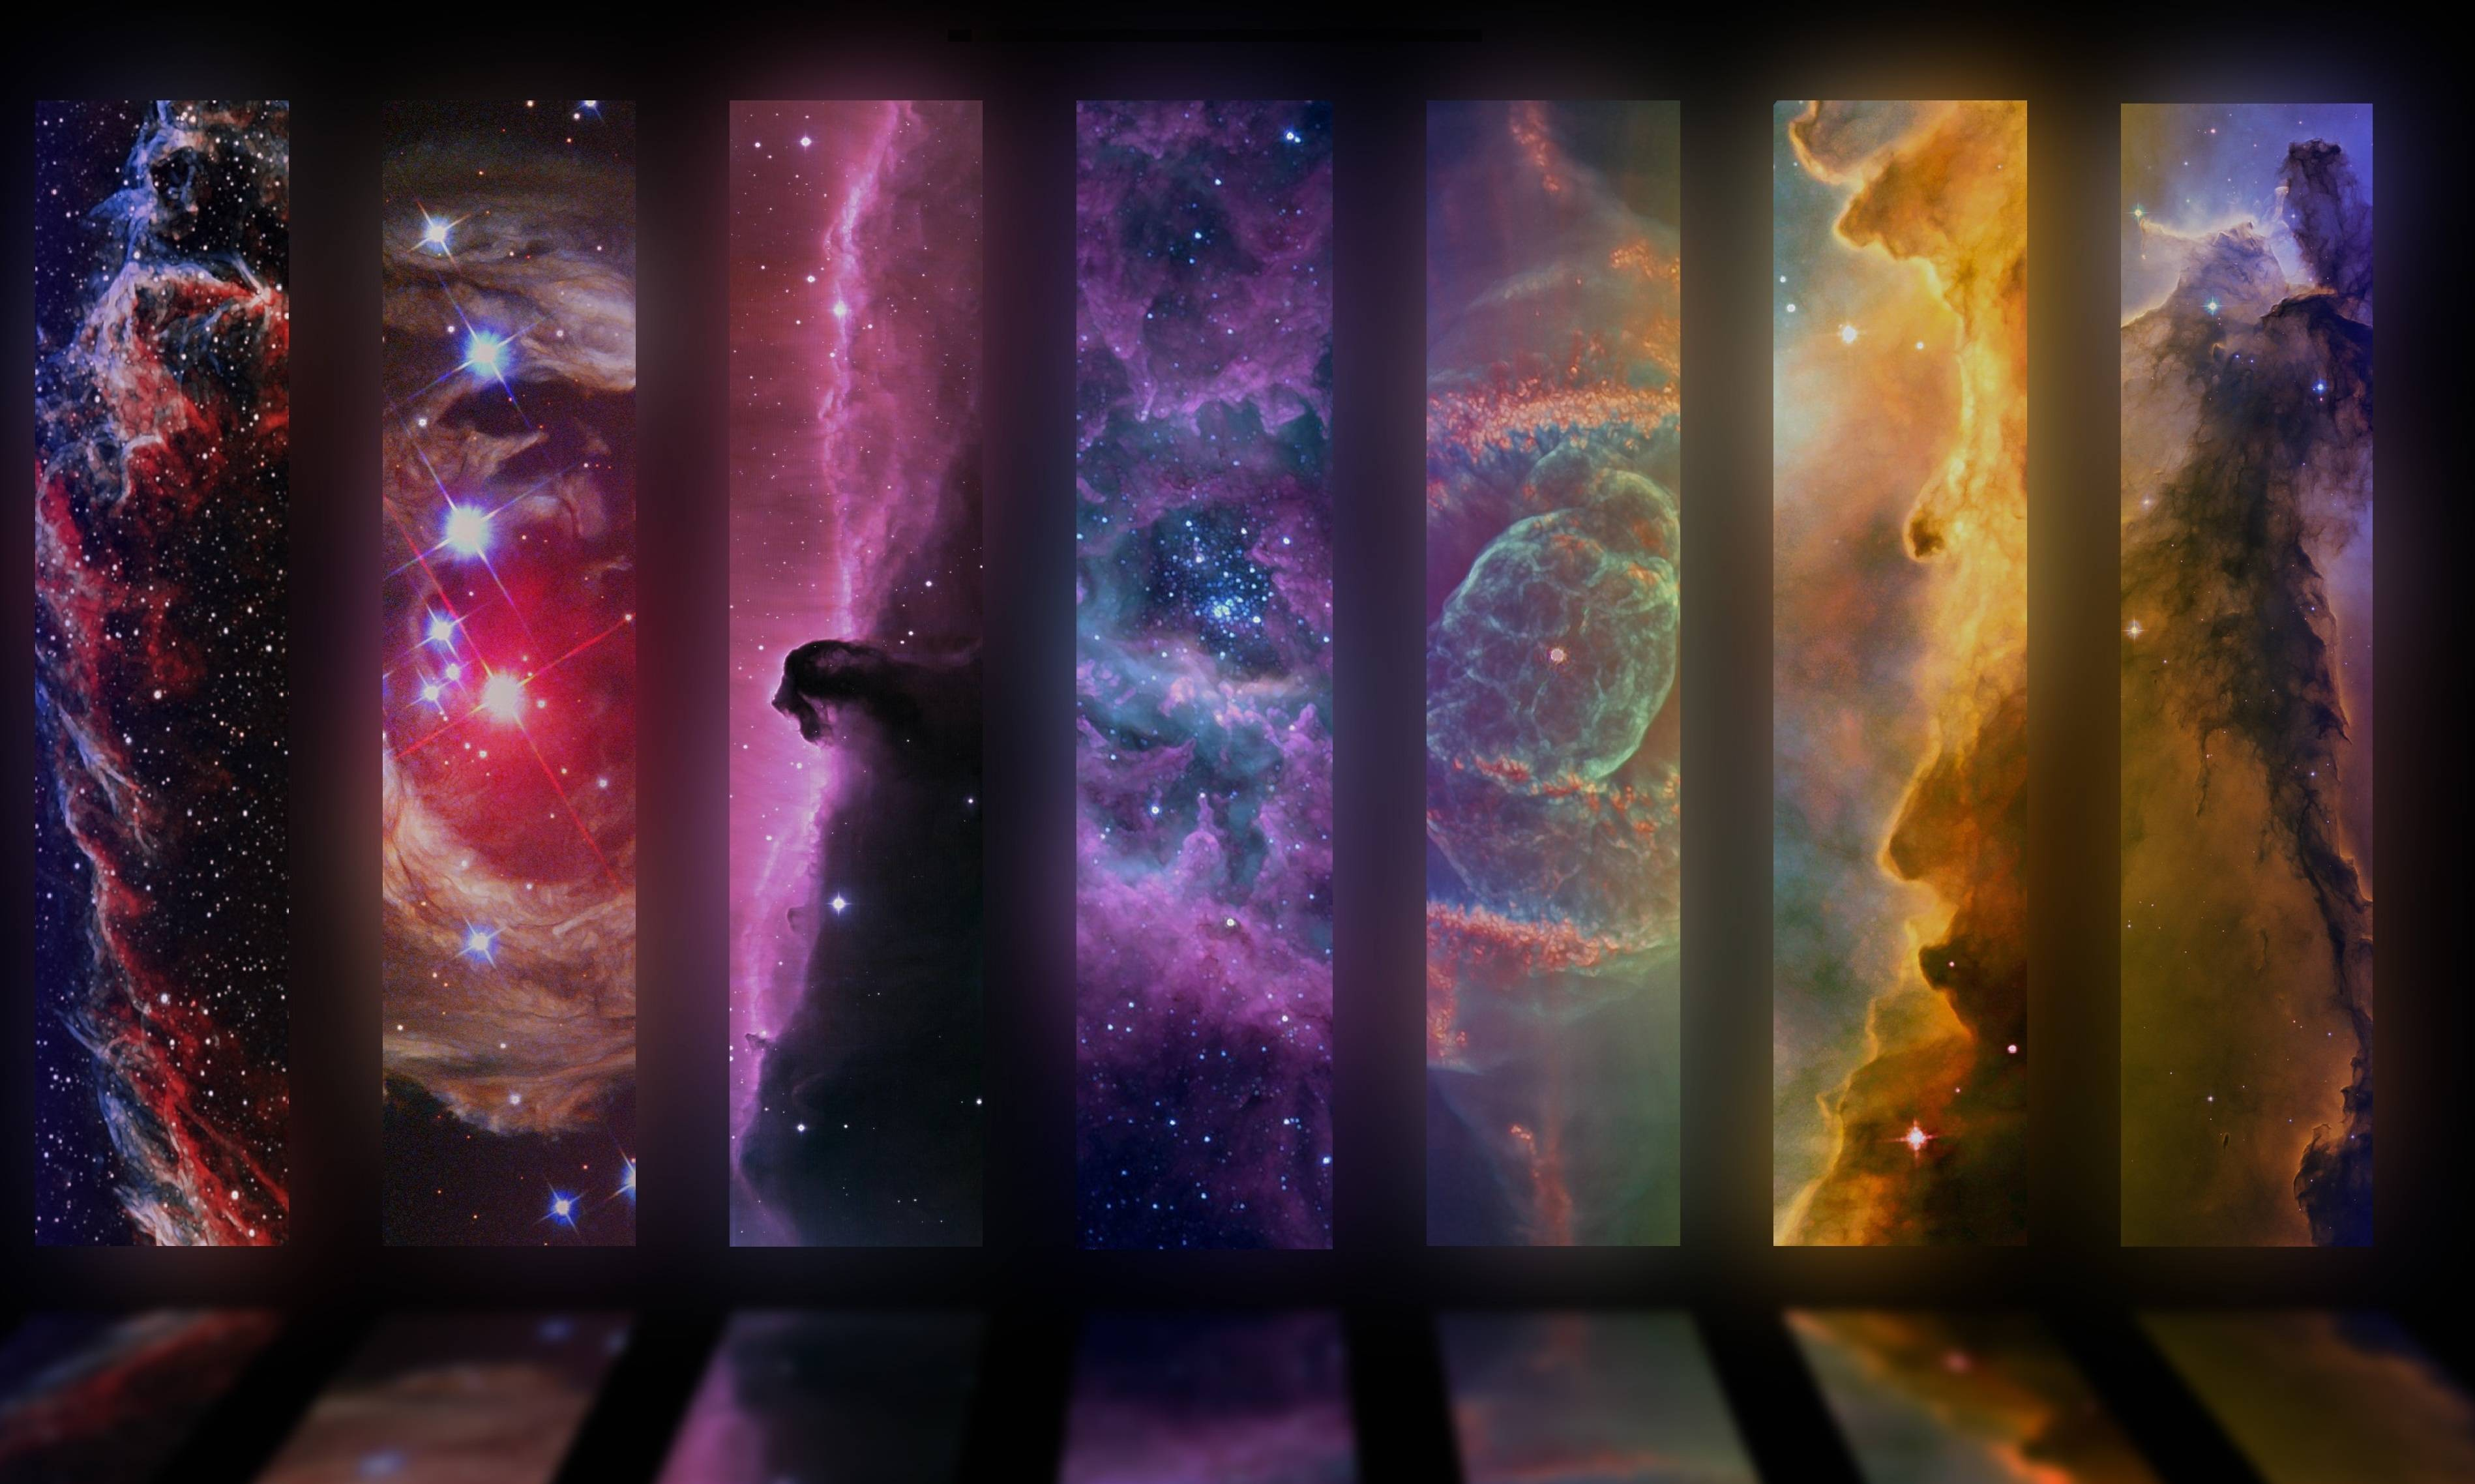 nebula space wallpapers widescreen - photo #36